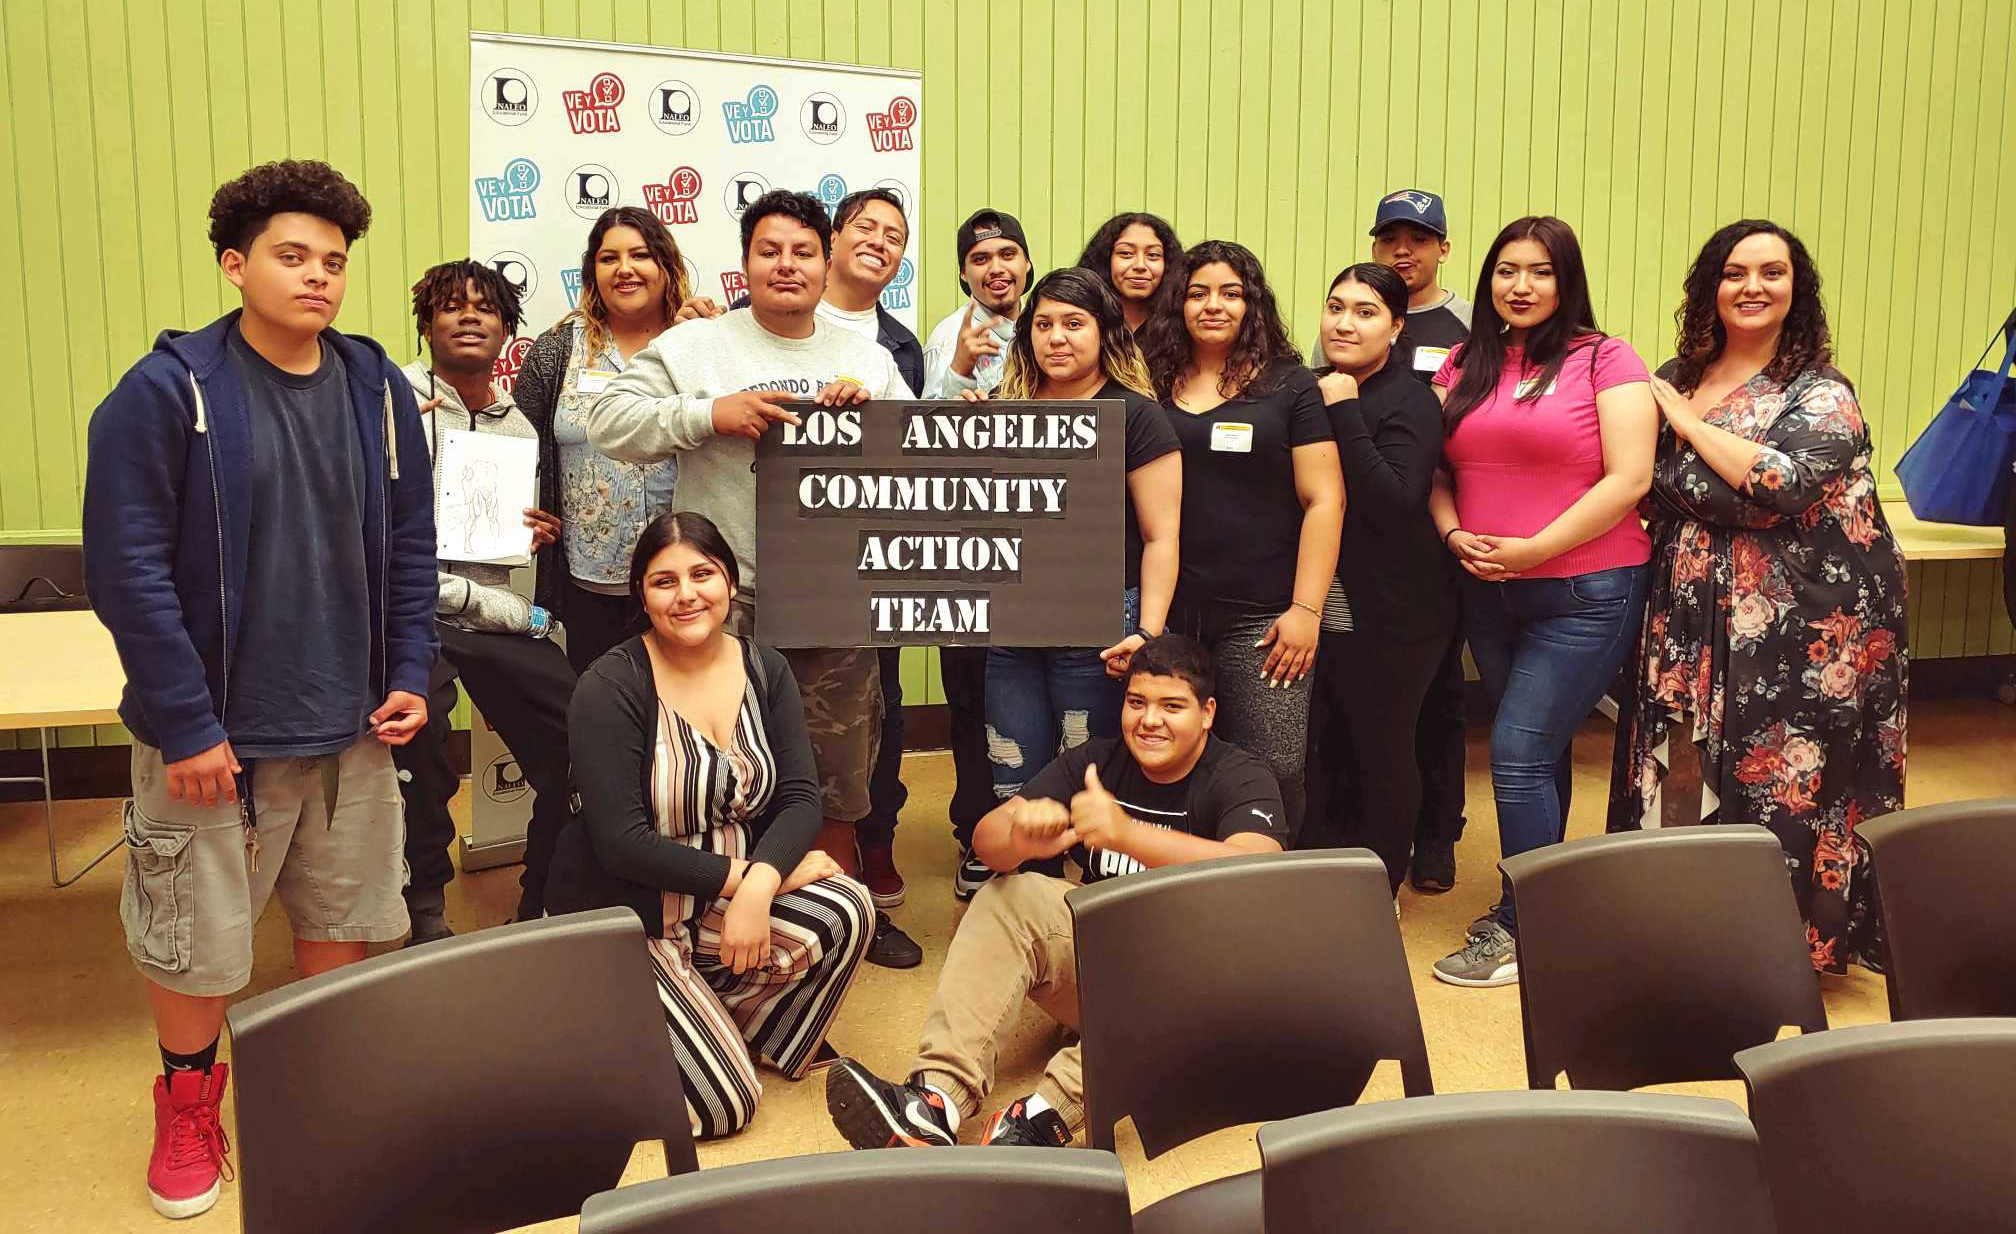 Group photo of the Los Angeles youth team